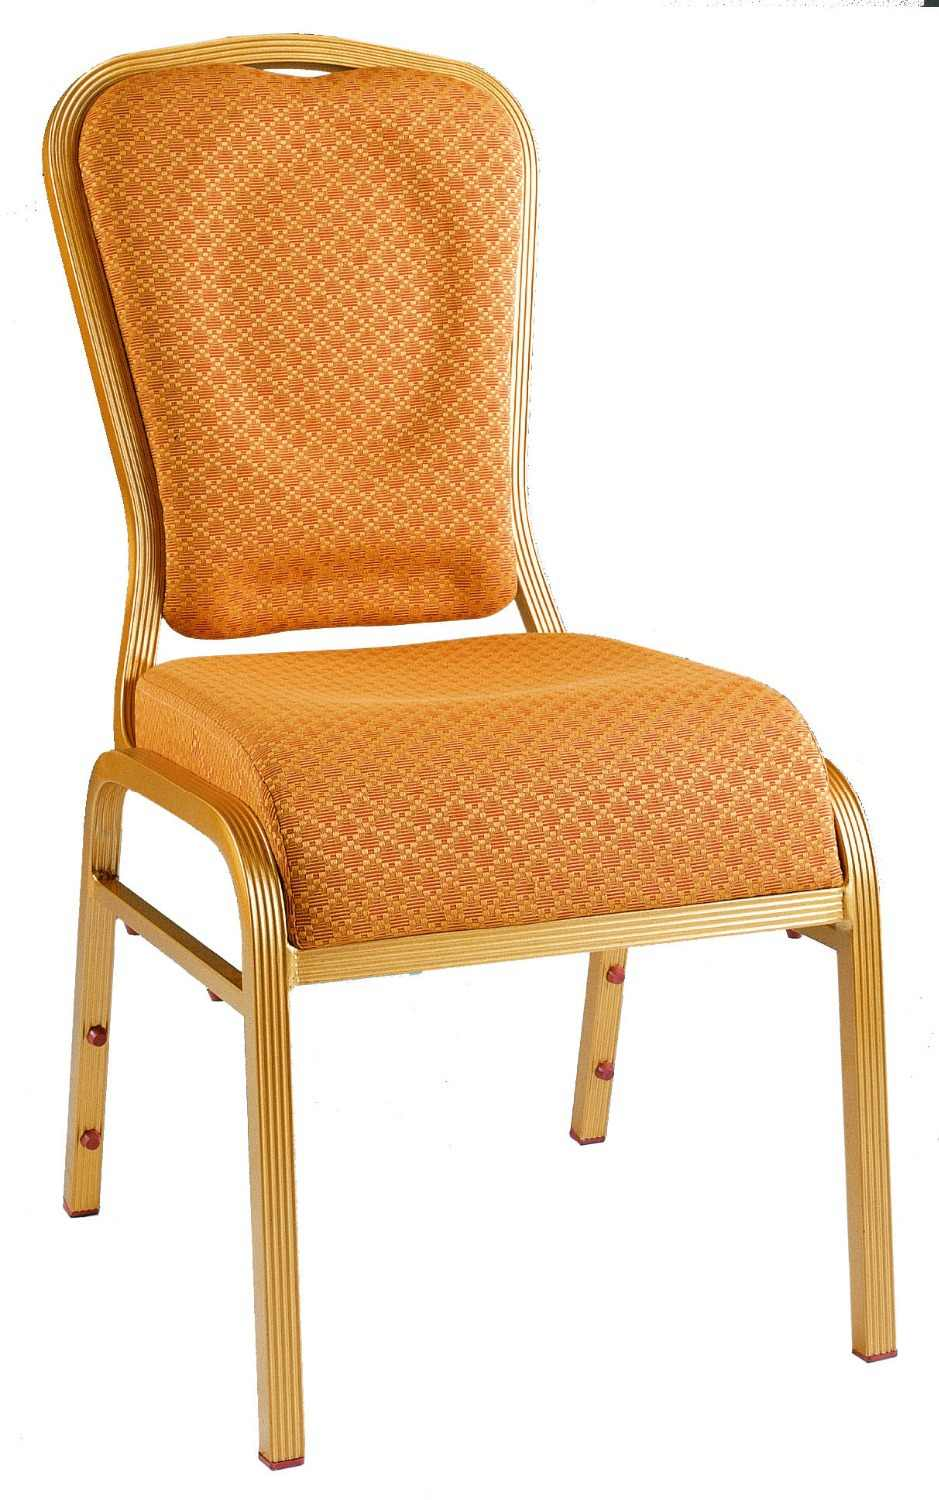 Wholesale Quality Strong Gold Aluminum Vip Banquet Chairs Lq